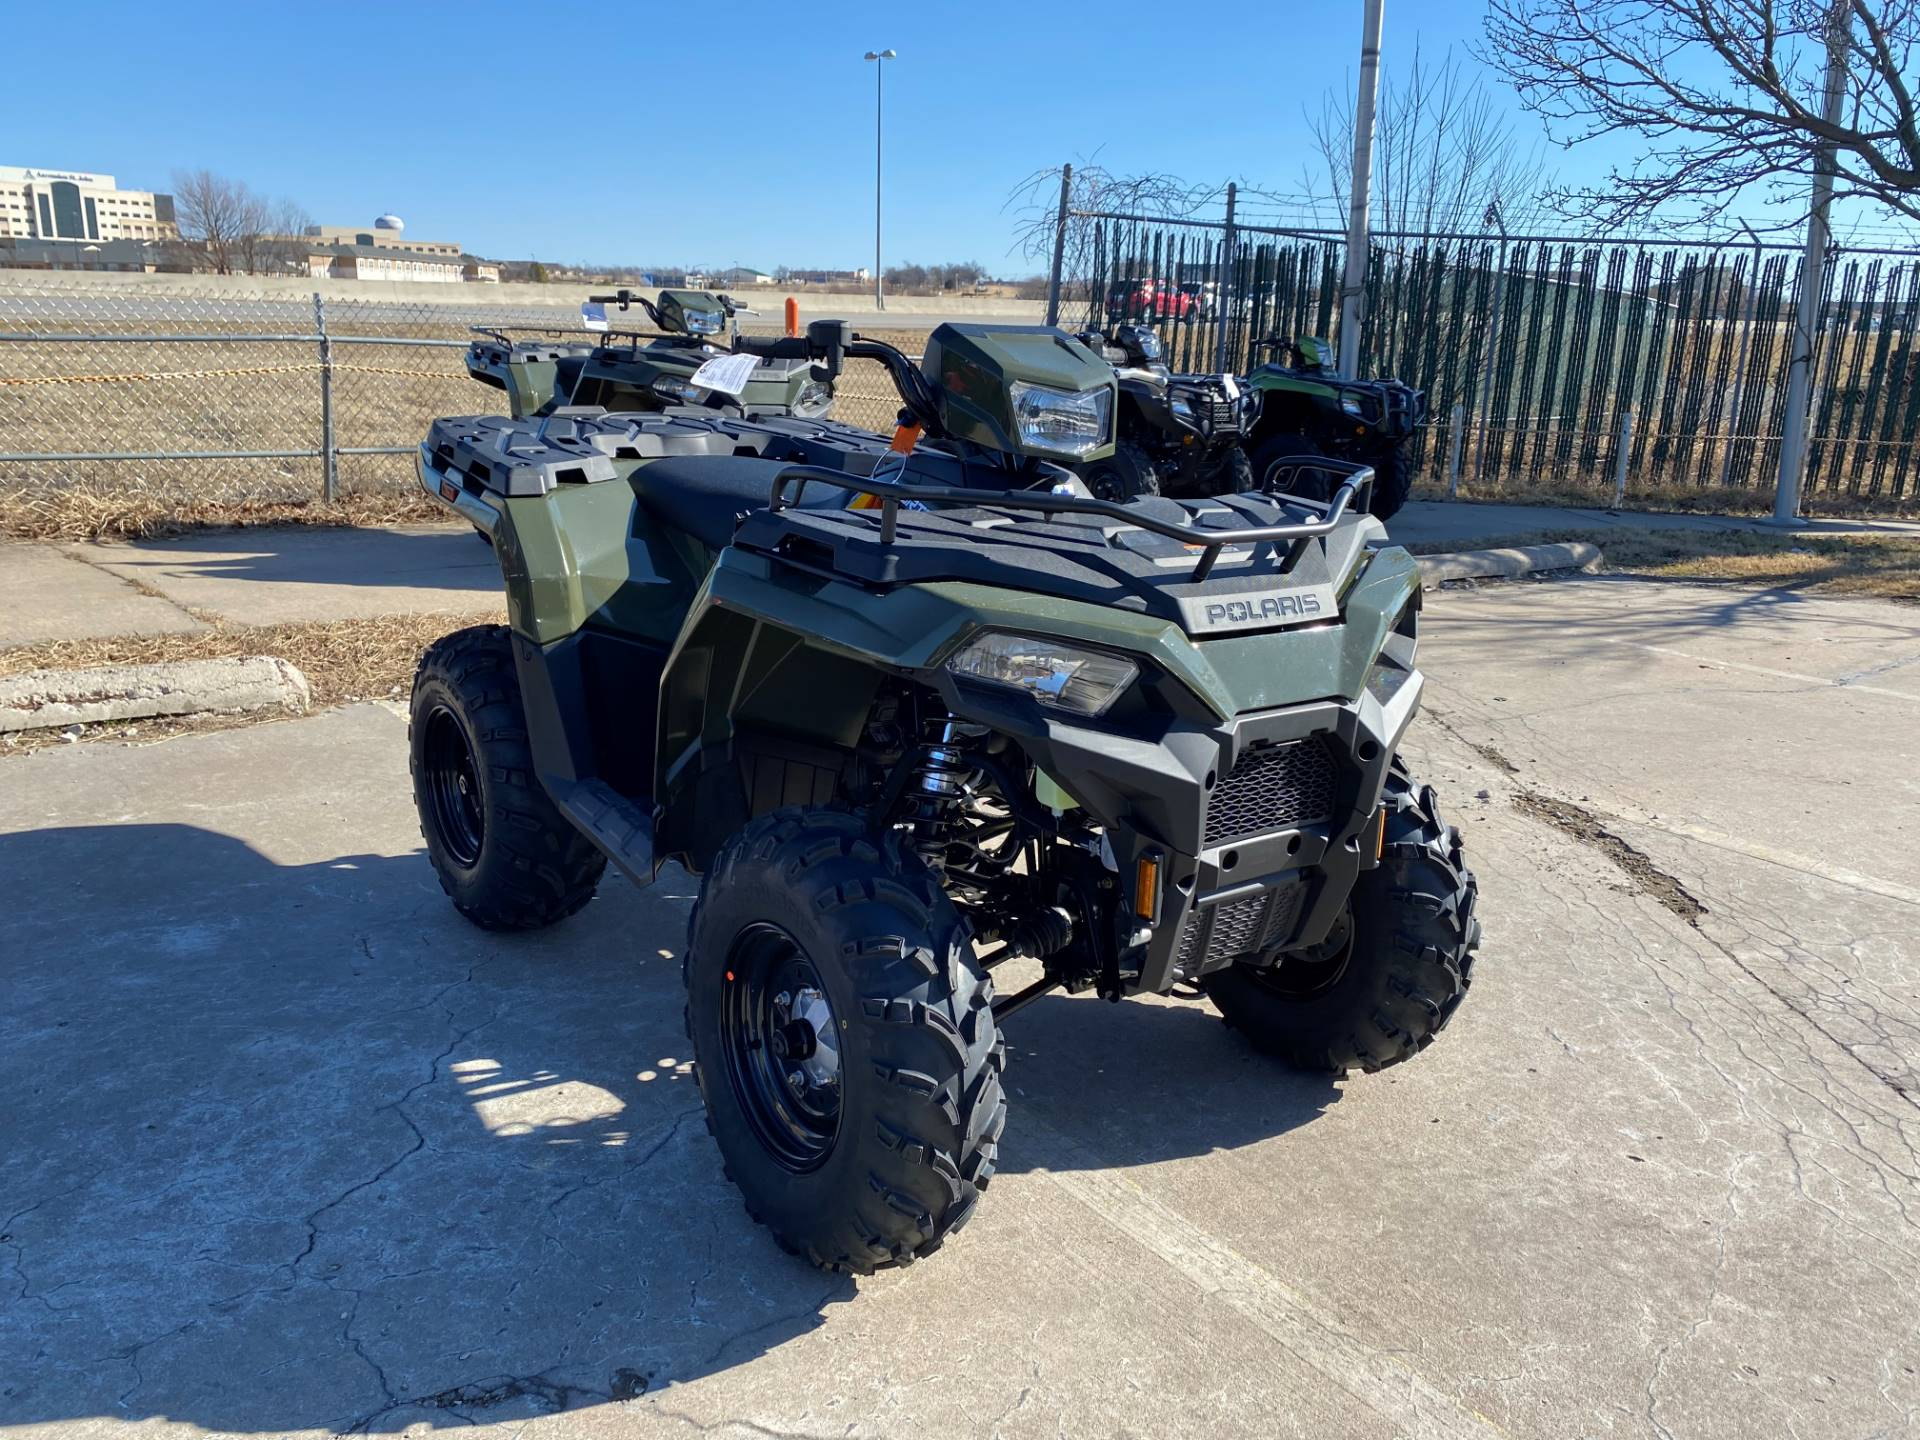 2021 Polaris Sportsman 450 H.O. in Broken Arrow, Oklahoma - Photo 1